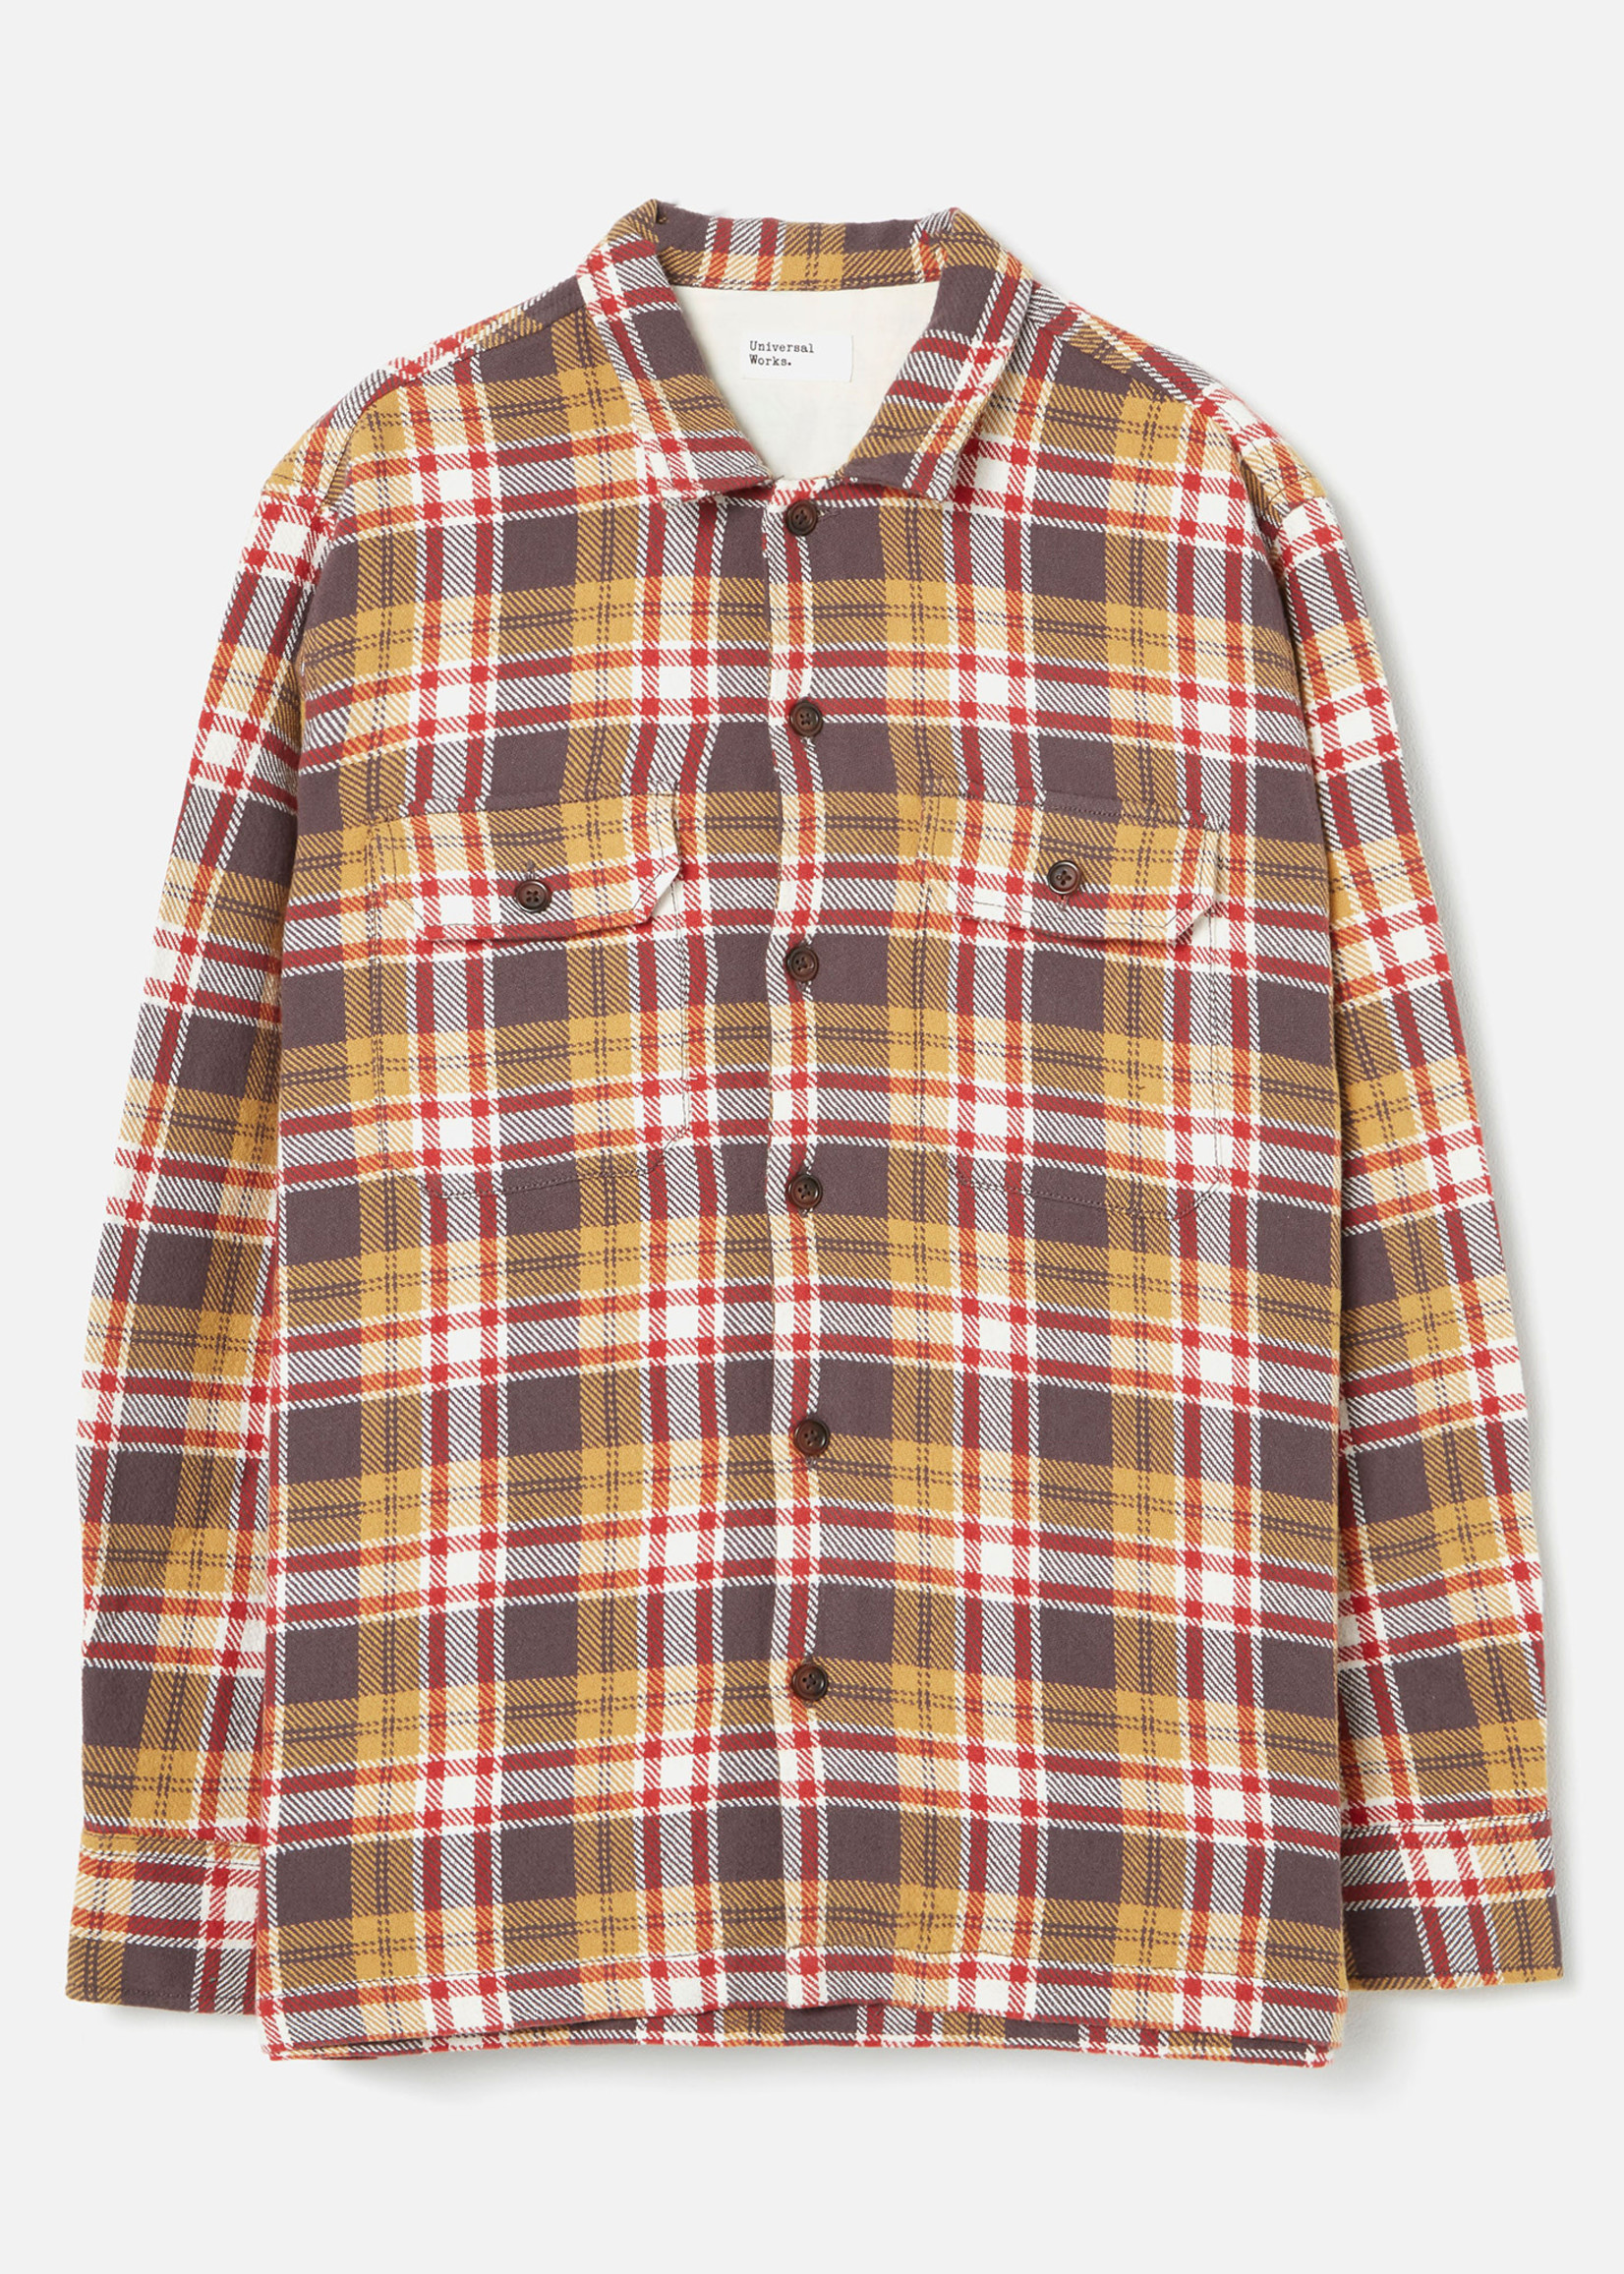 Universal Works L/S Utility Shirt Sand/Red Plaid Cotton by Universal Works